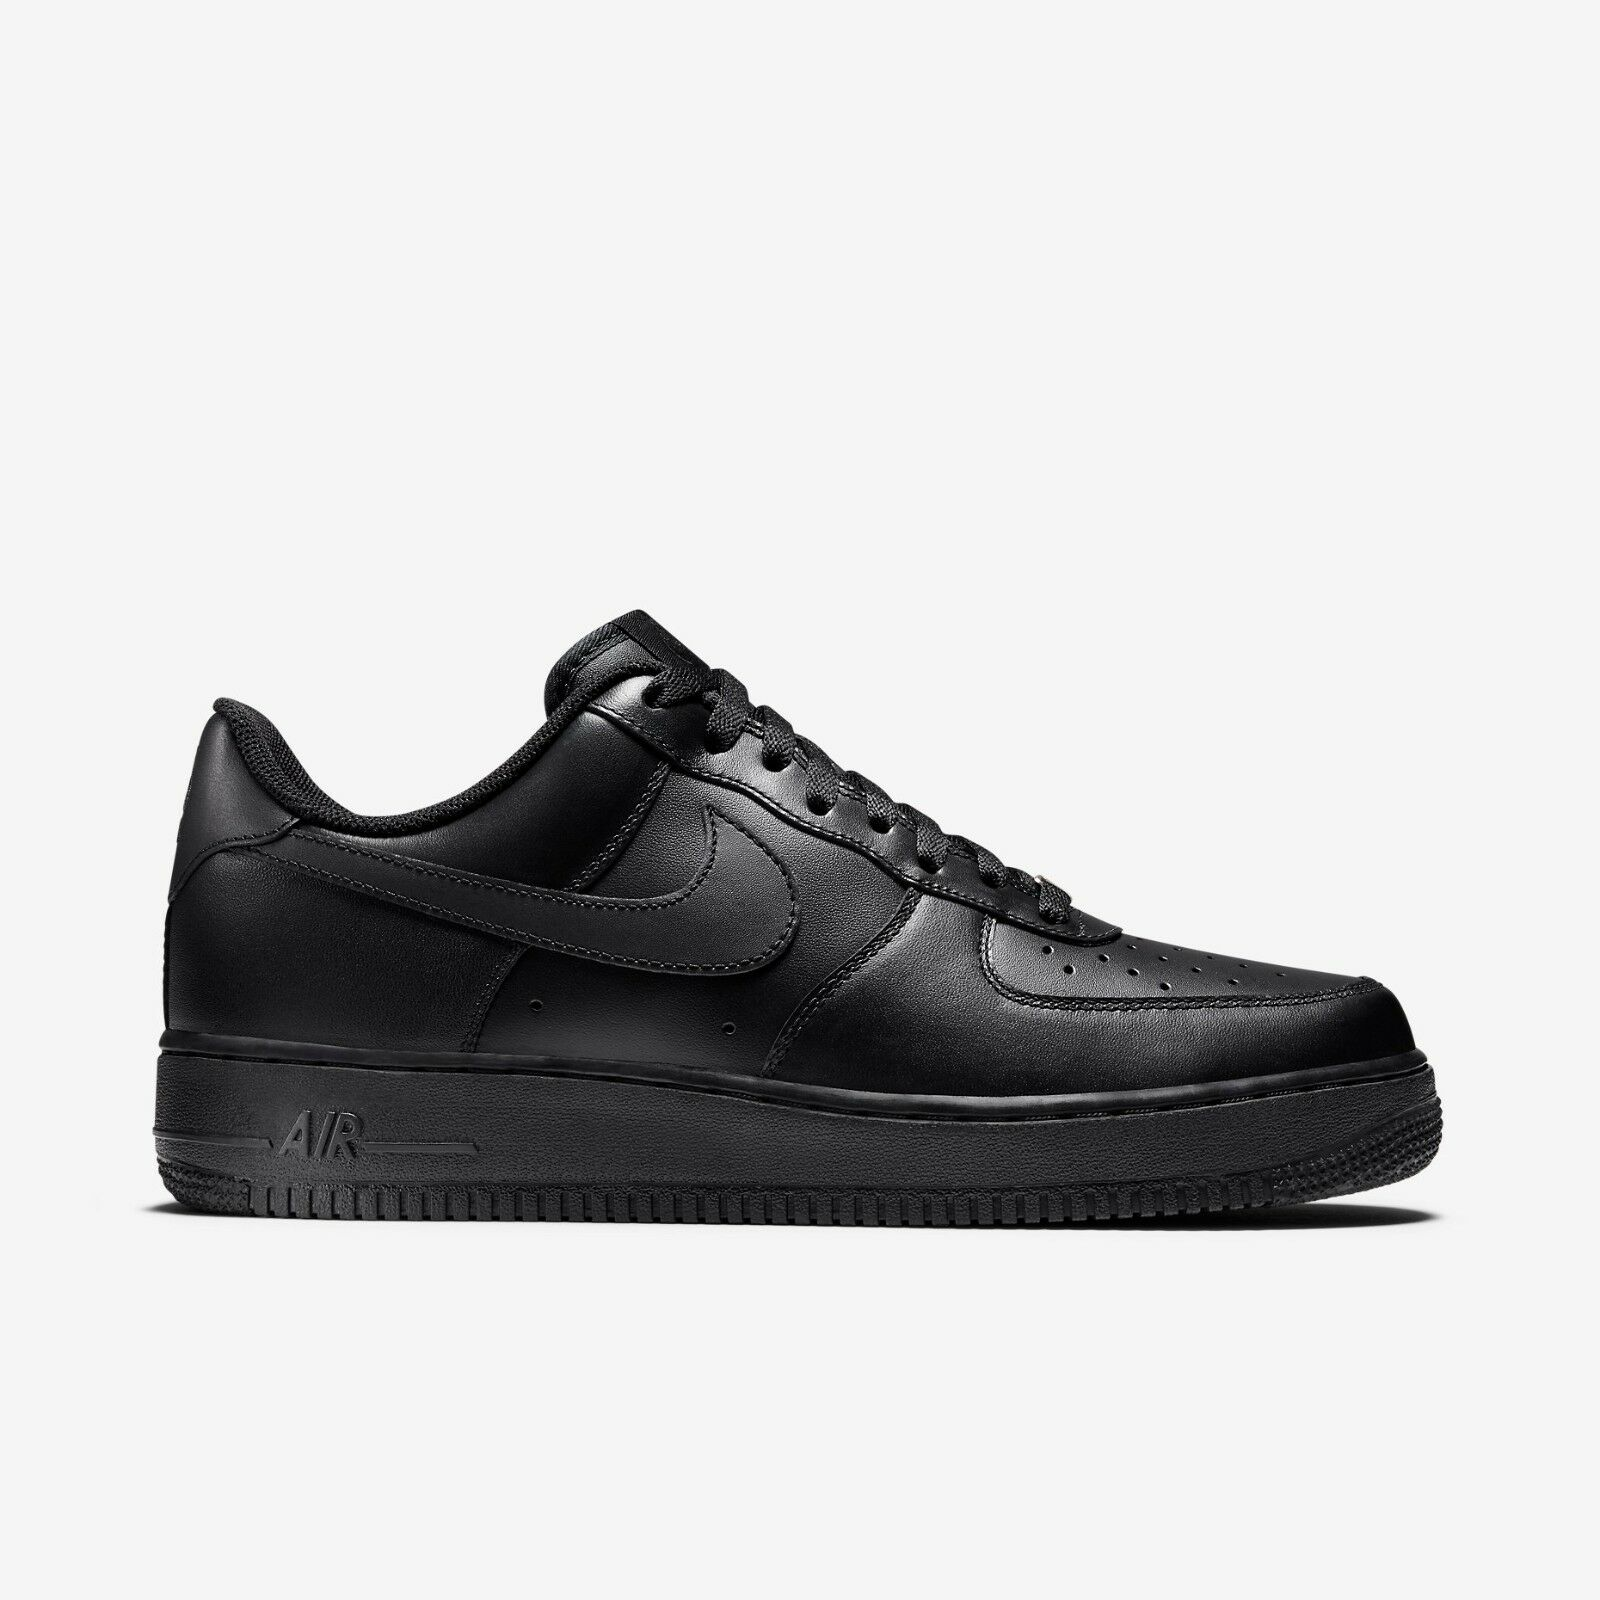 timeless design e50bc a2331 85%OFF New Men s Nike Air Force 1 Low Authentic Shoes (315122-001